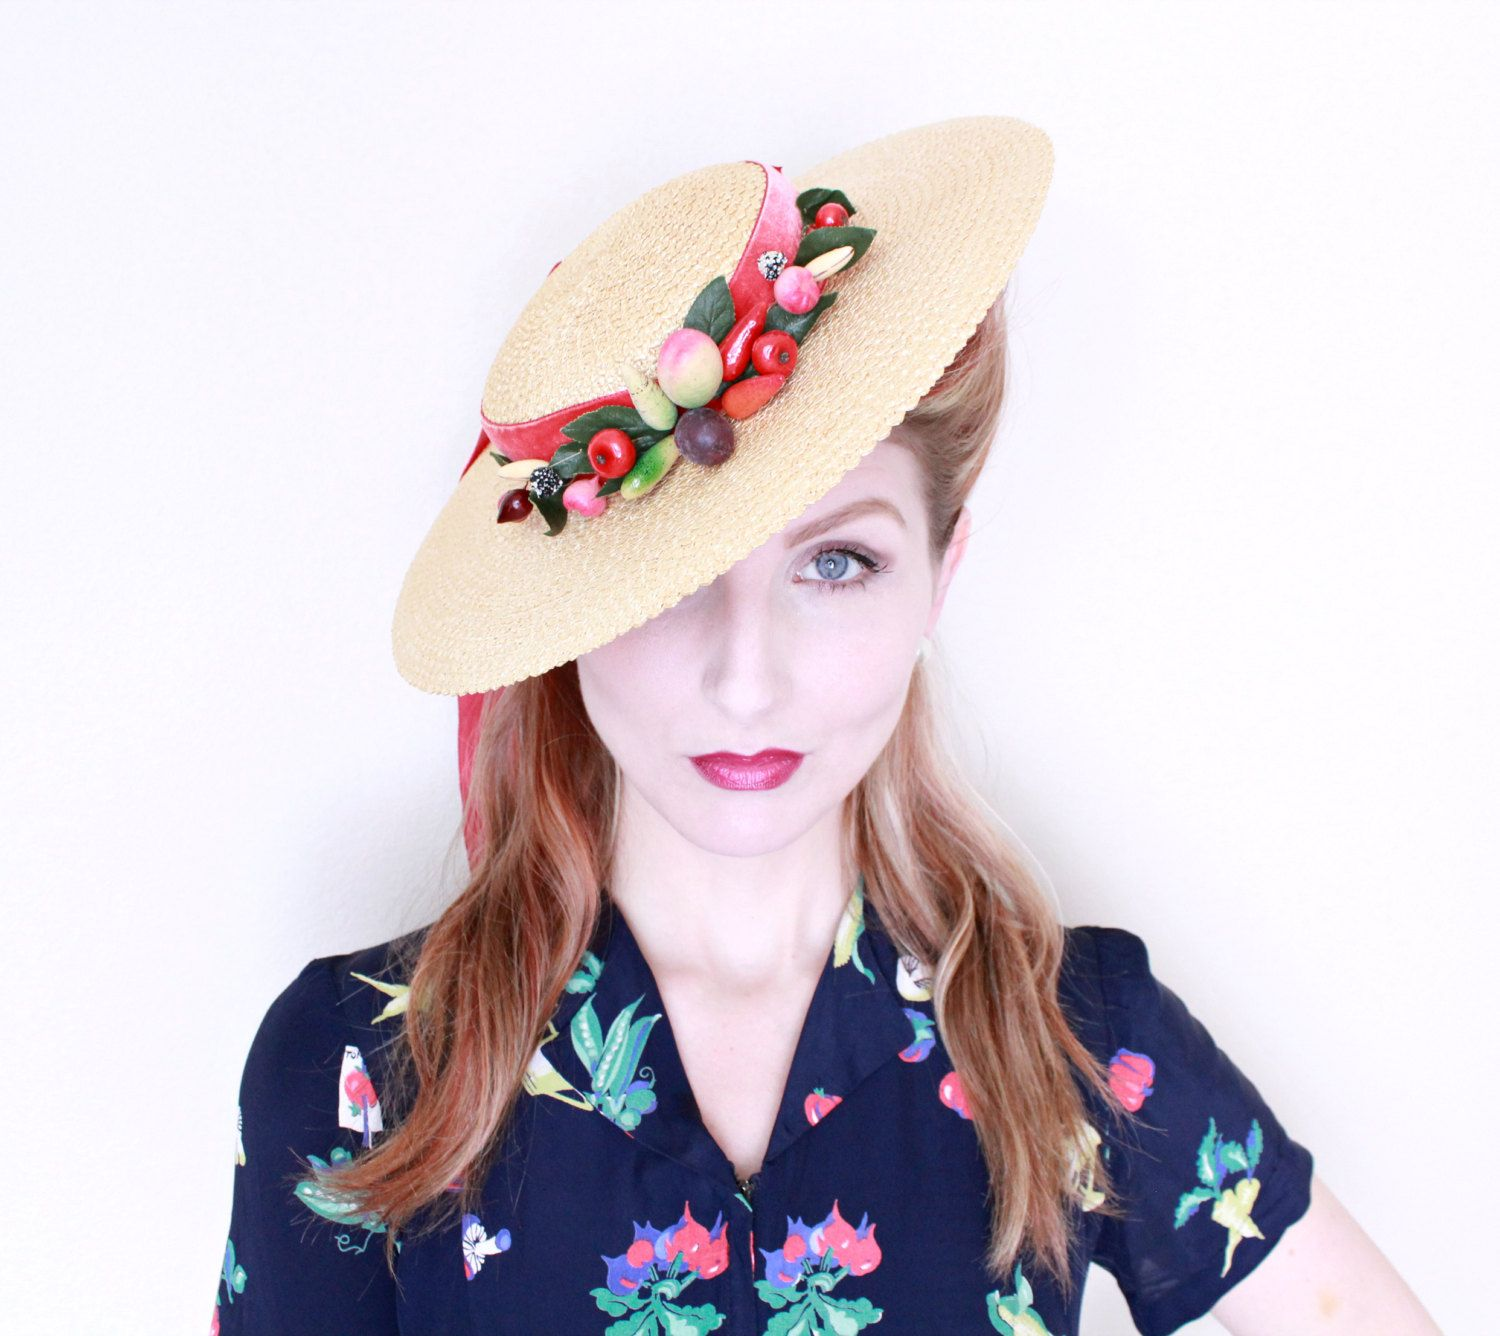 501b09029f3 1940s Hat   VINTAGE   Fruit   Wide brim   Saucer   Straw   Velvet Ribbon    ADORABLE   Kawaii by HighHatCouture on Etsy